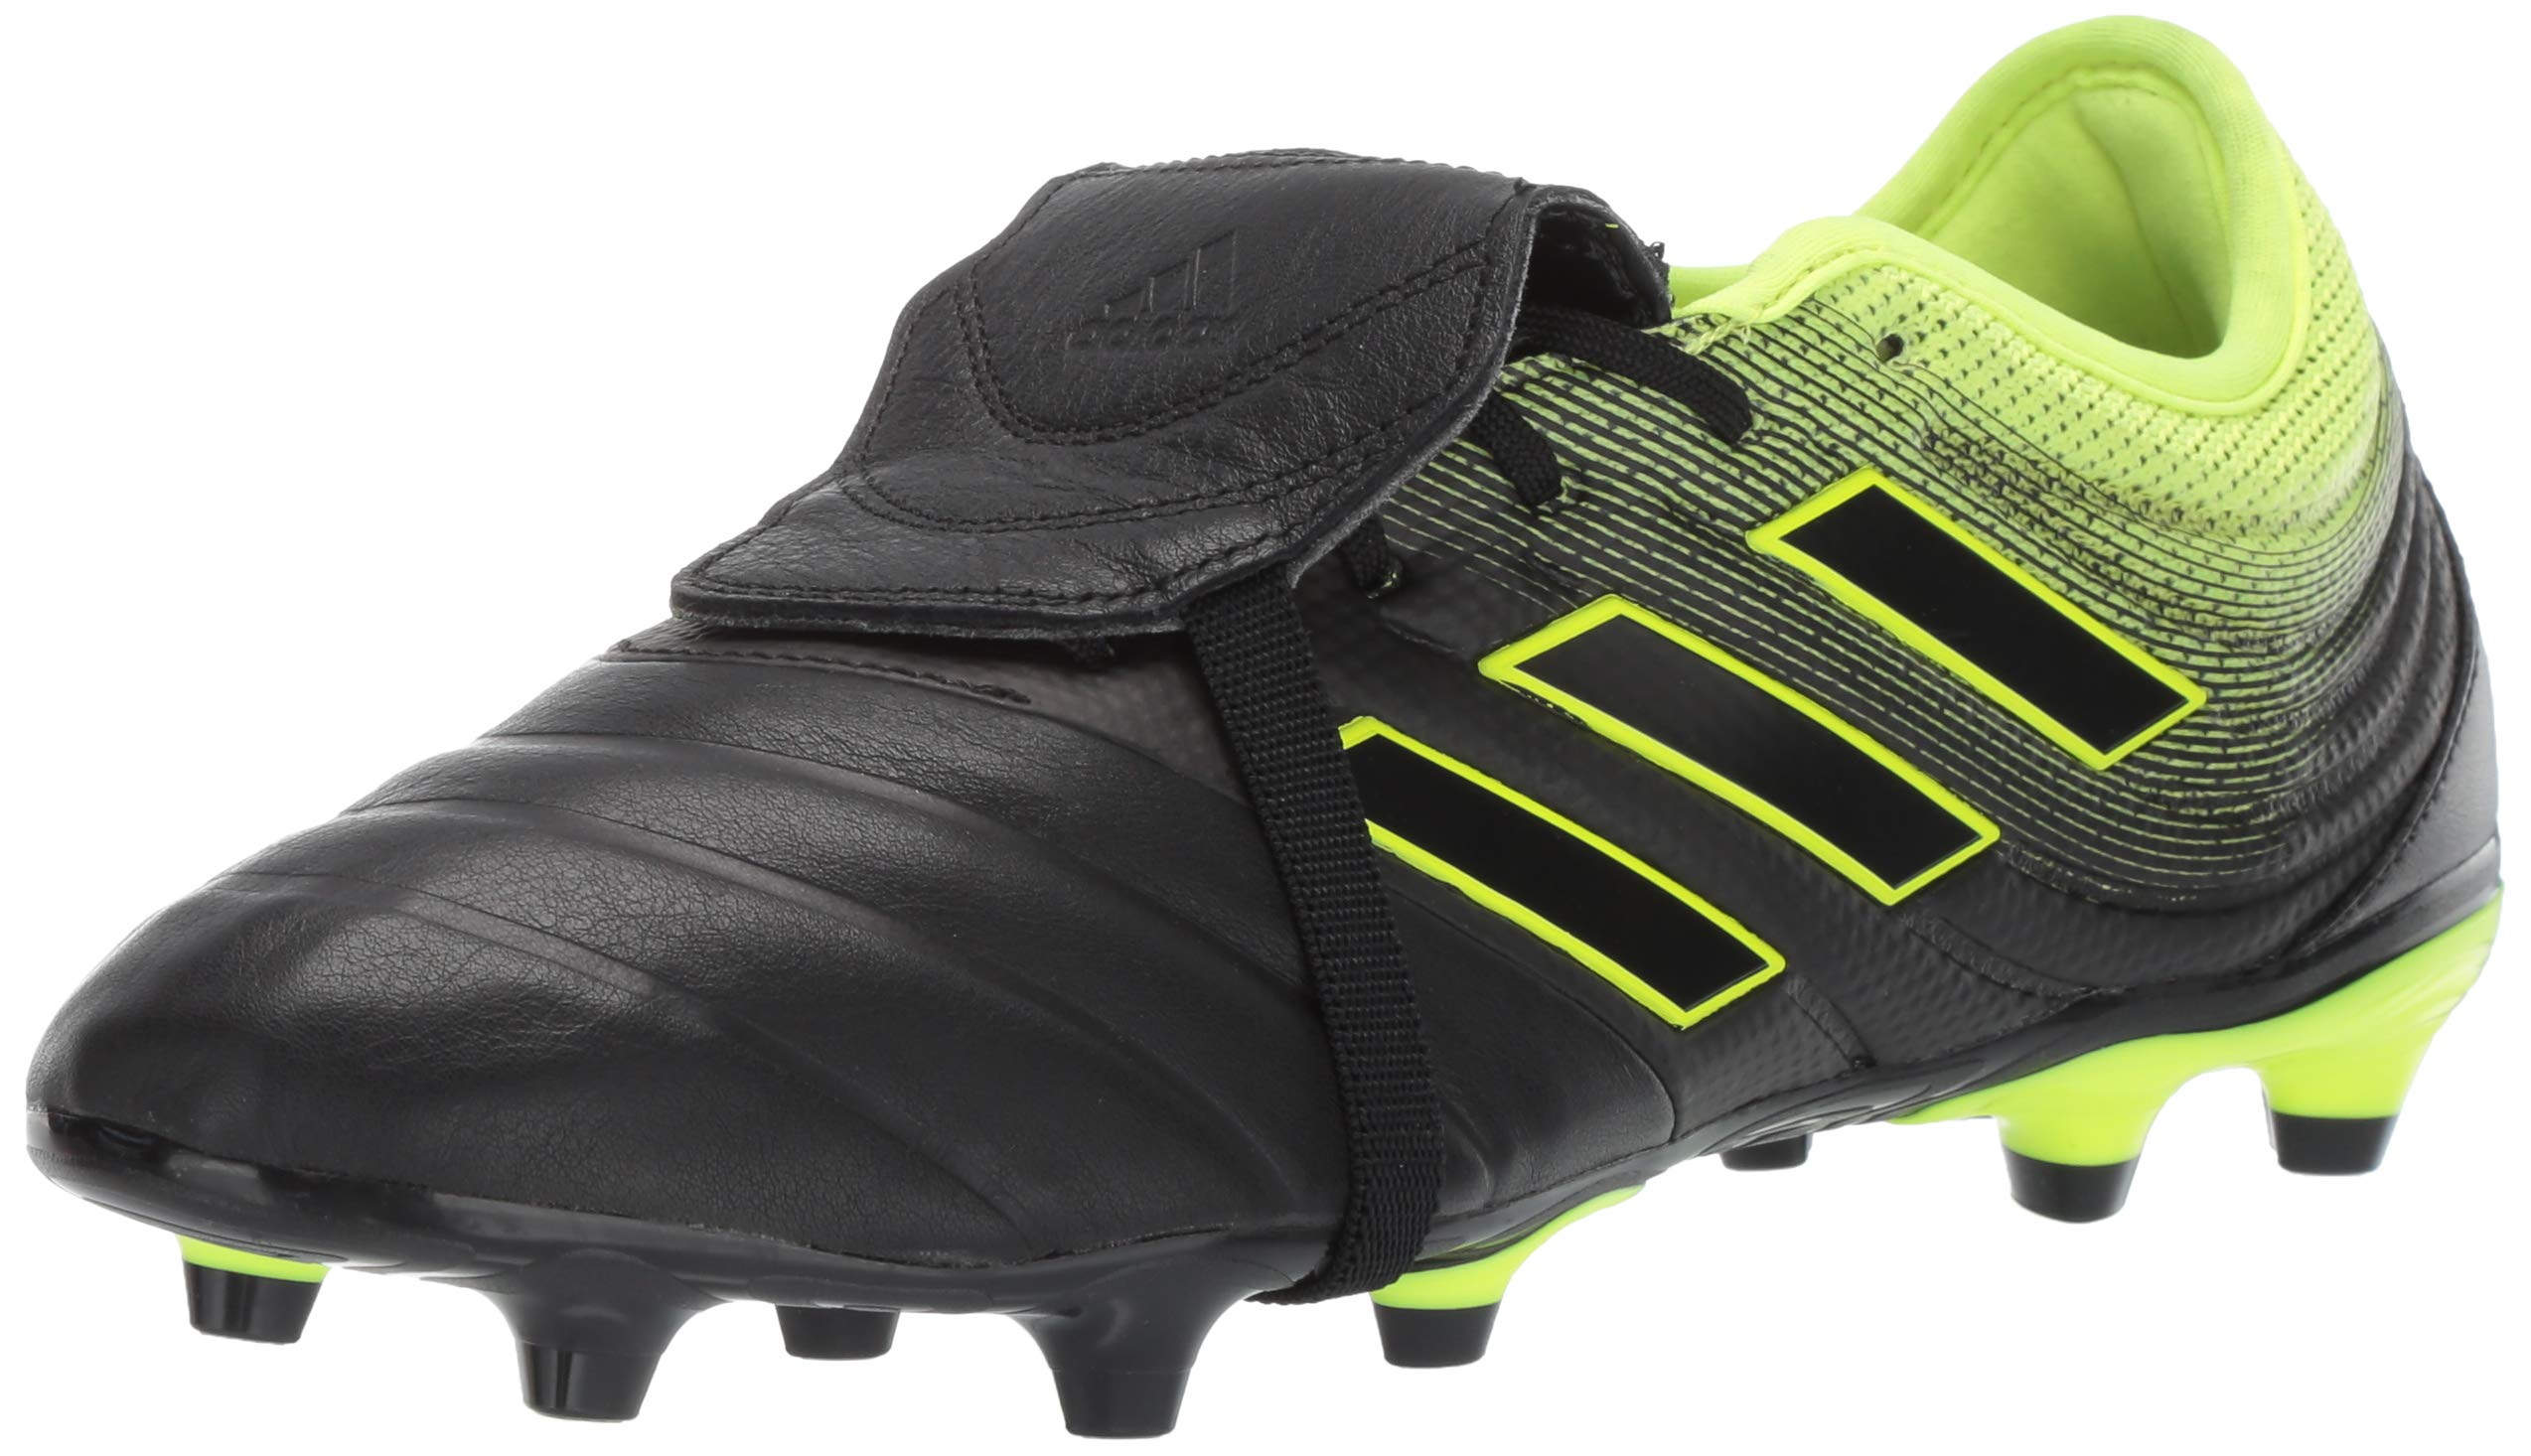 adidas Men's Copa Gloro 19.2 Firm Ground, Black/Solar Yellow, 10.5 M US by adidas